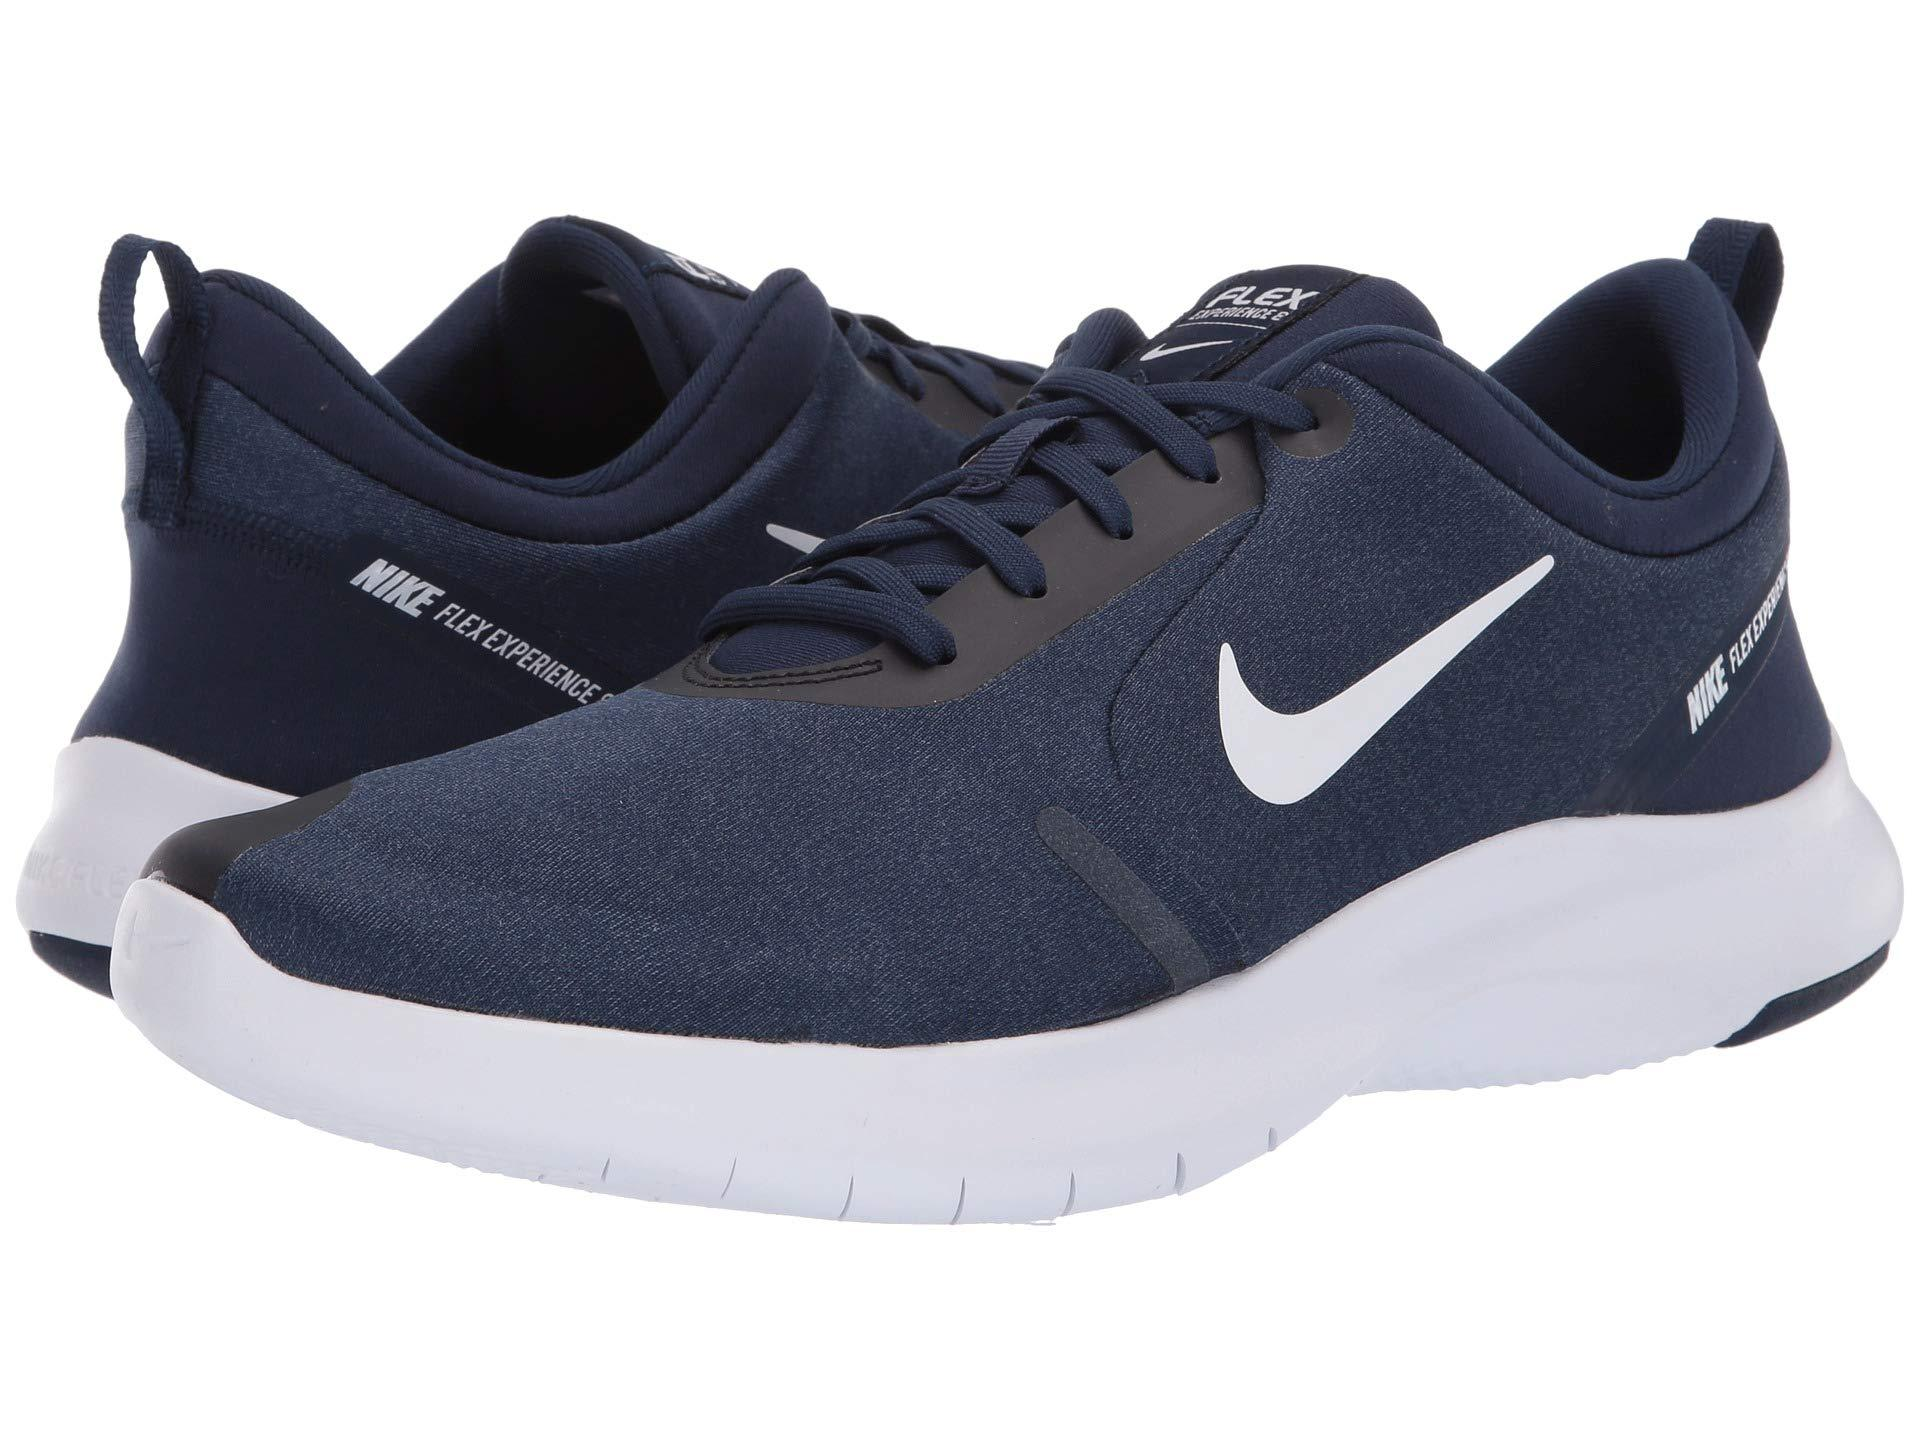 5a4af3b47dd3 Lyst - Nike Flex Experience Rn 8 (midnight Navy white monsoon Blue ...